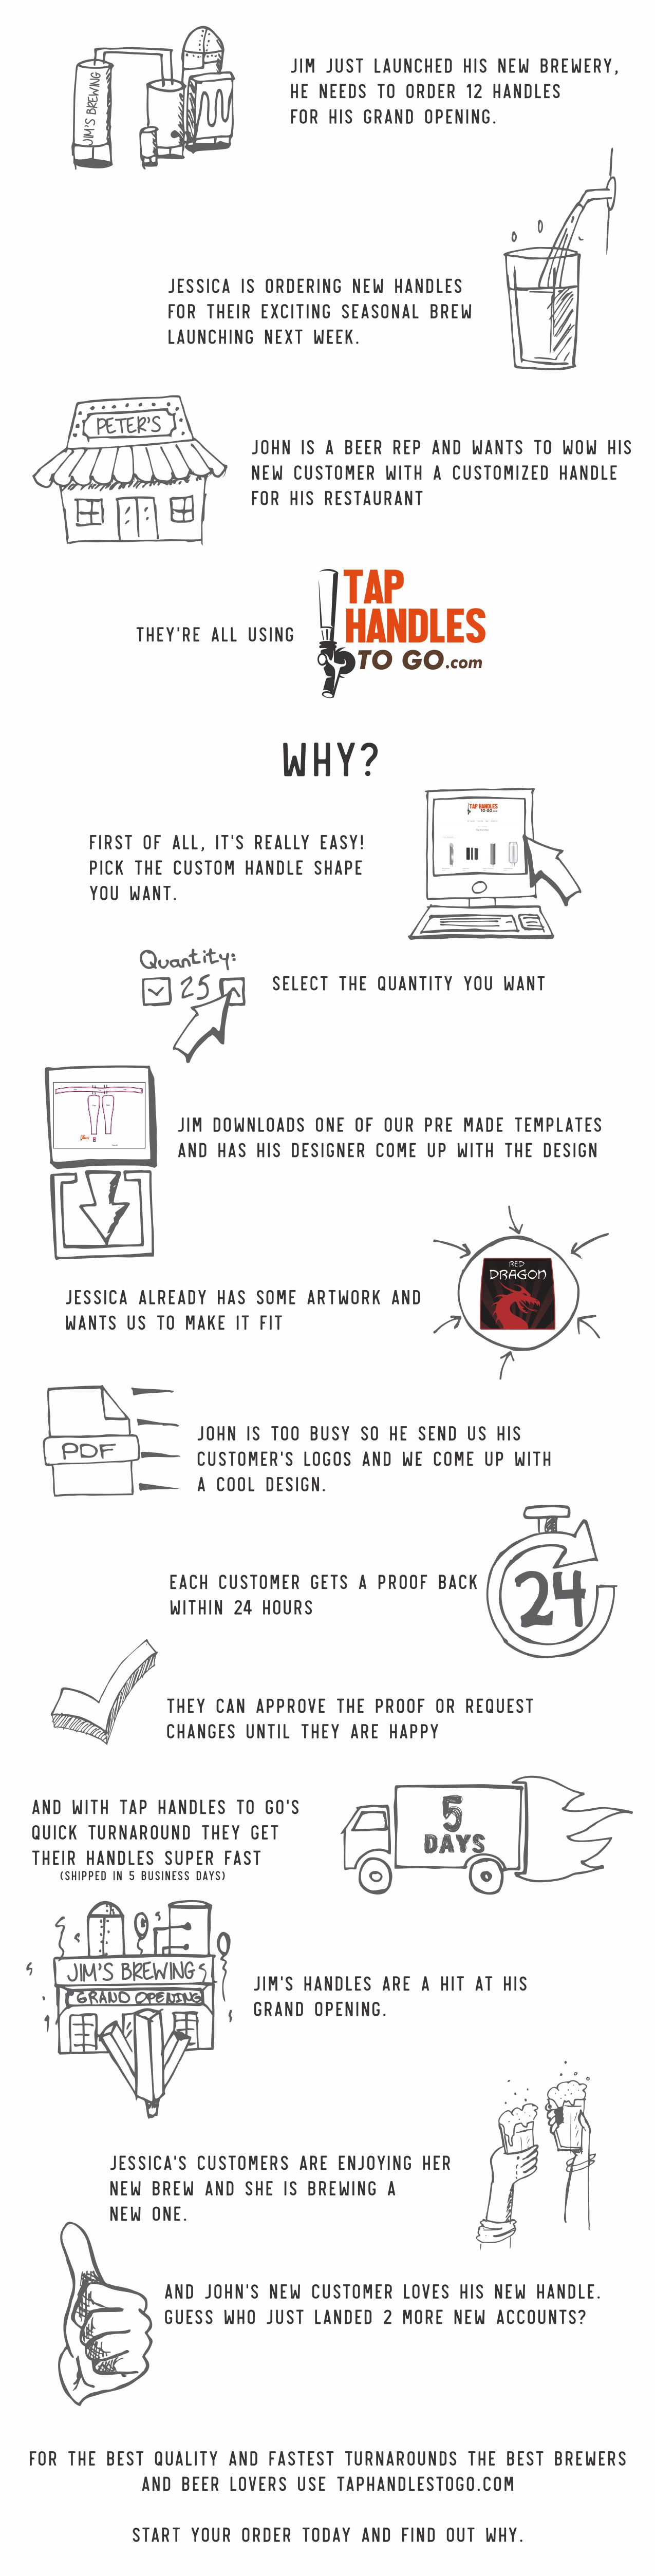 how-to-order3.jpg